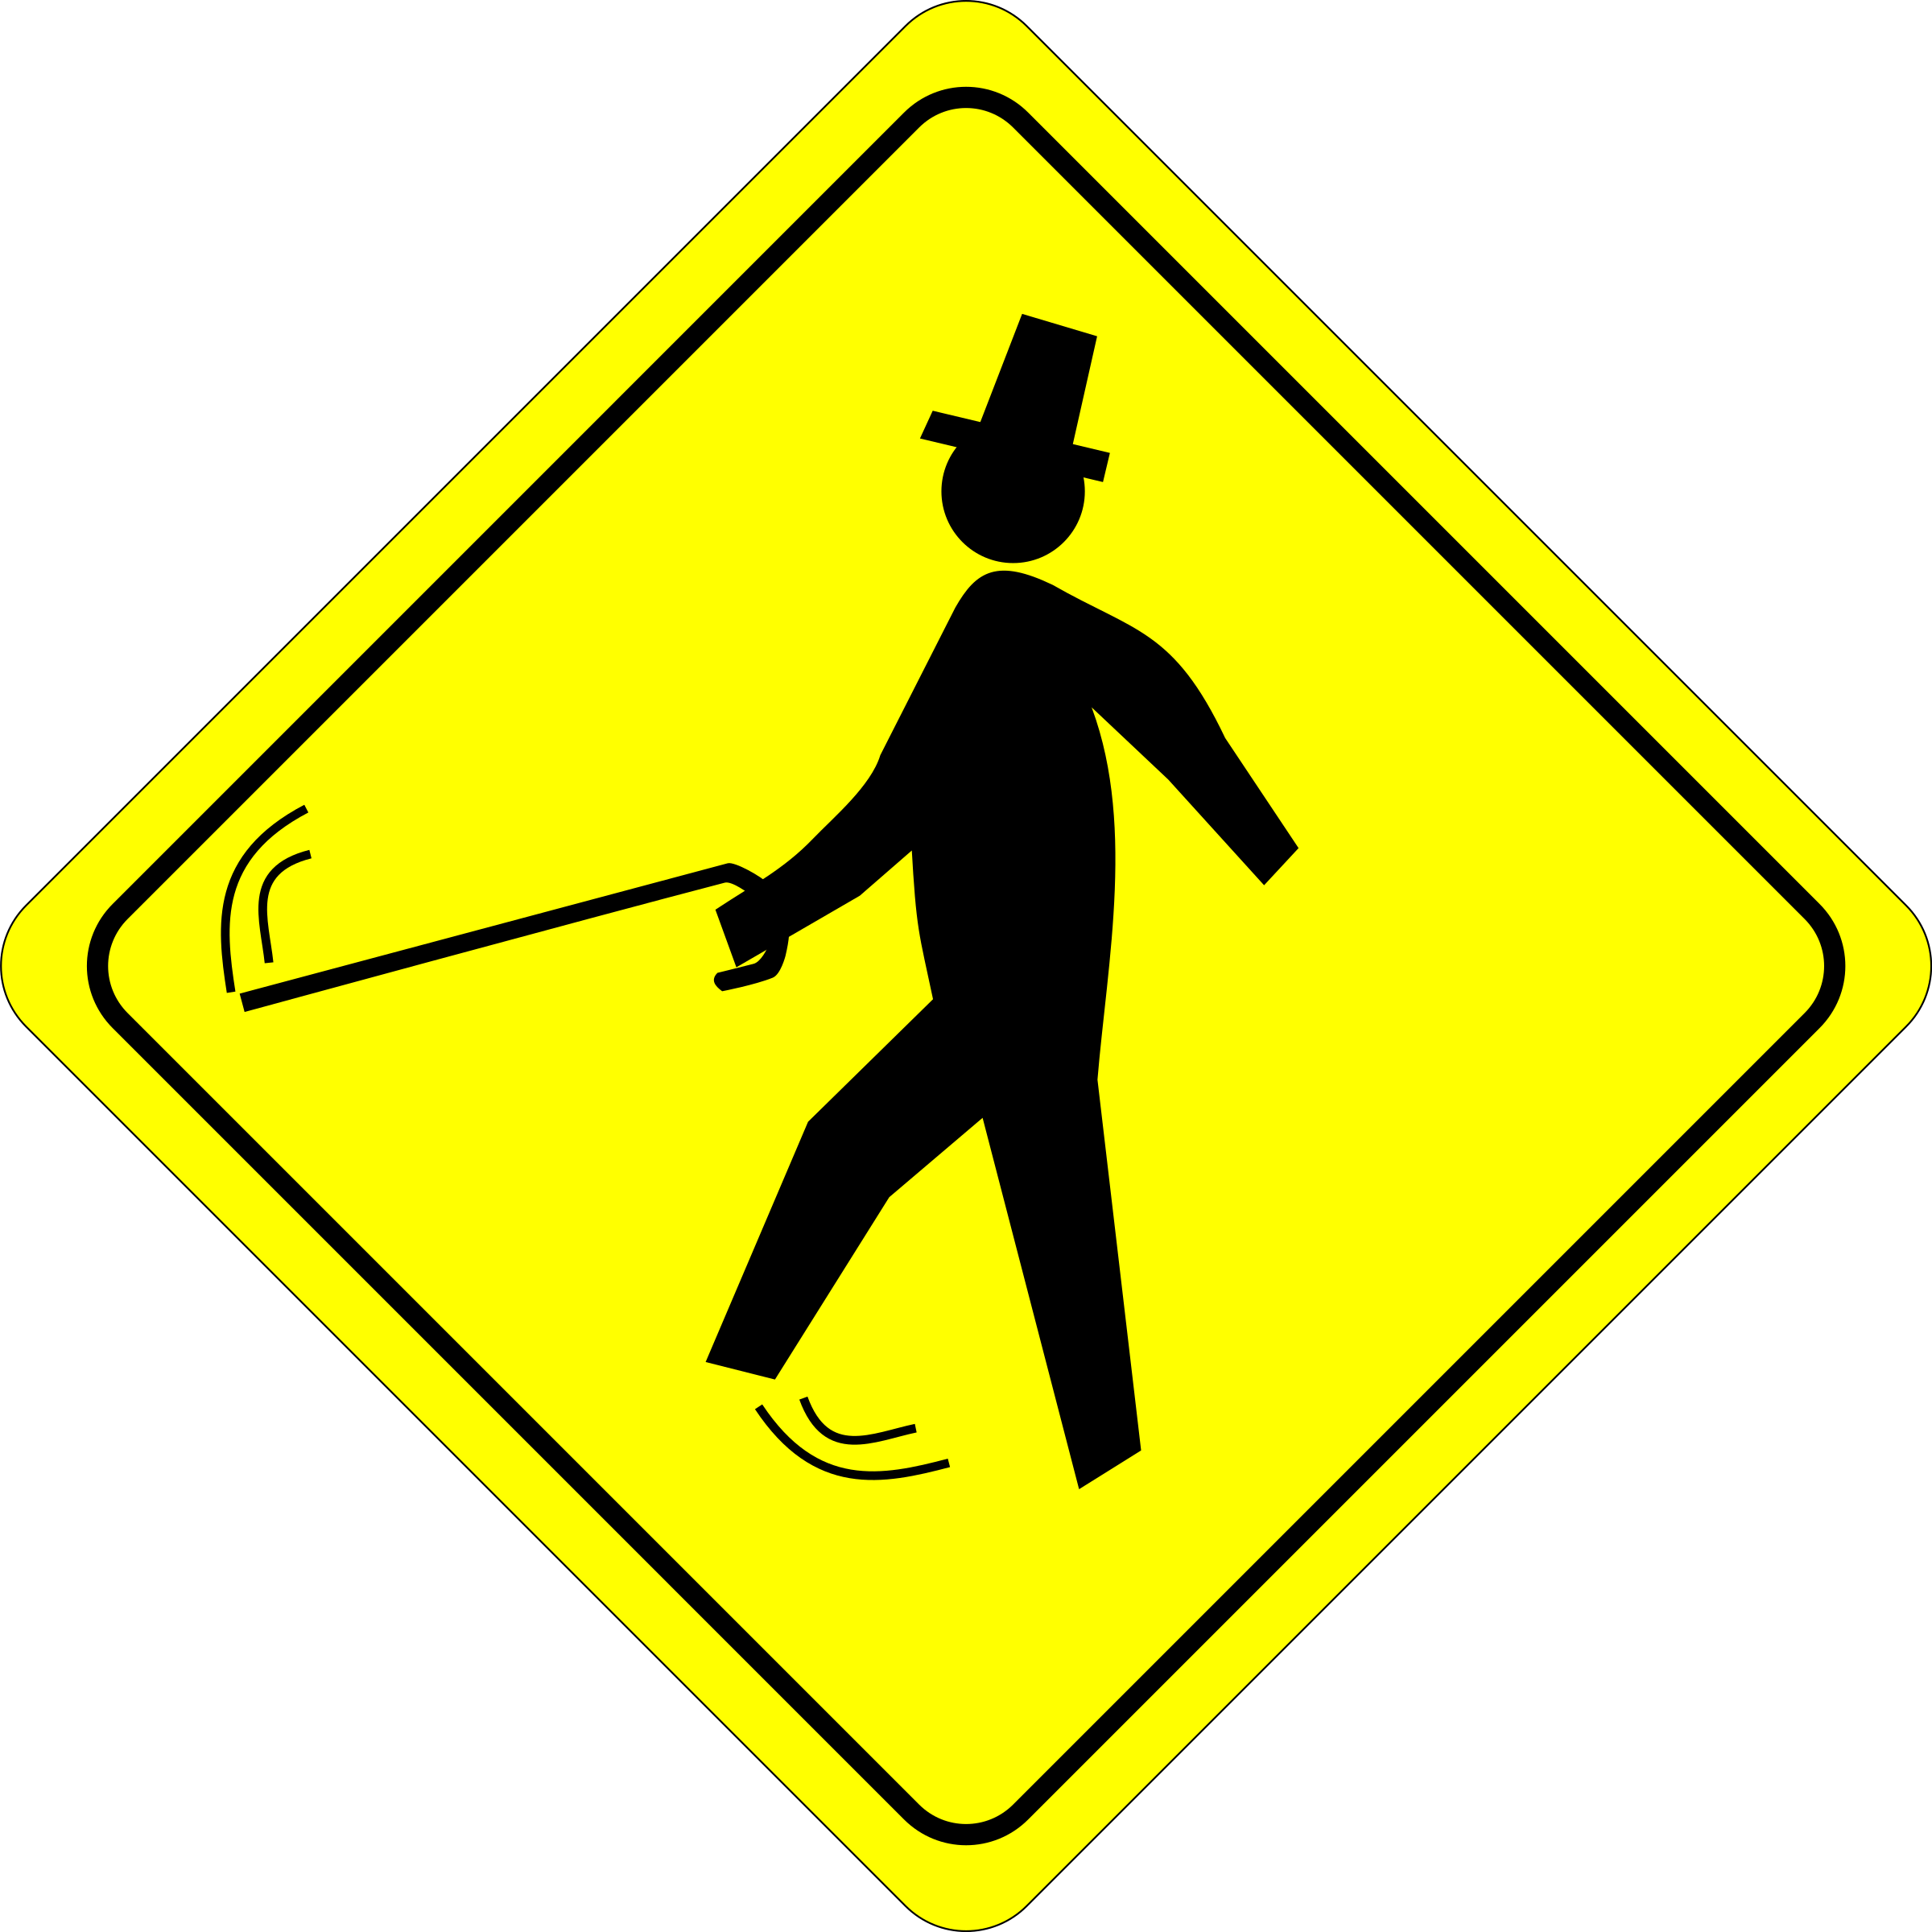 Jaunty Pedestrian (Caution) by algotruneman